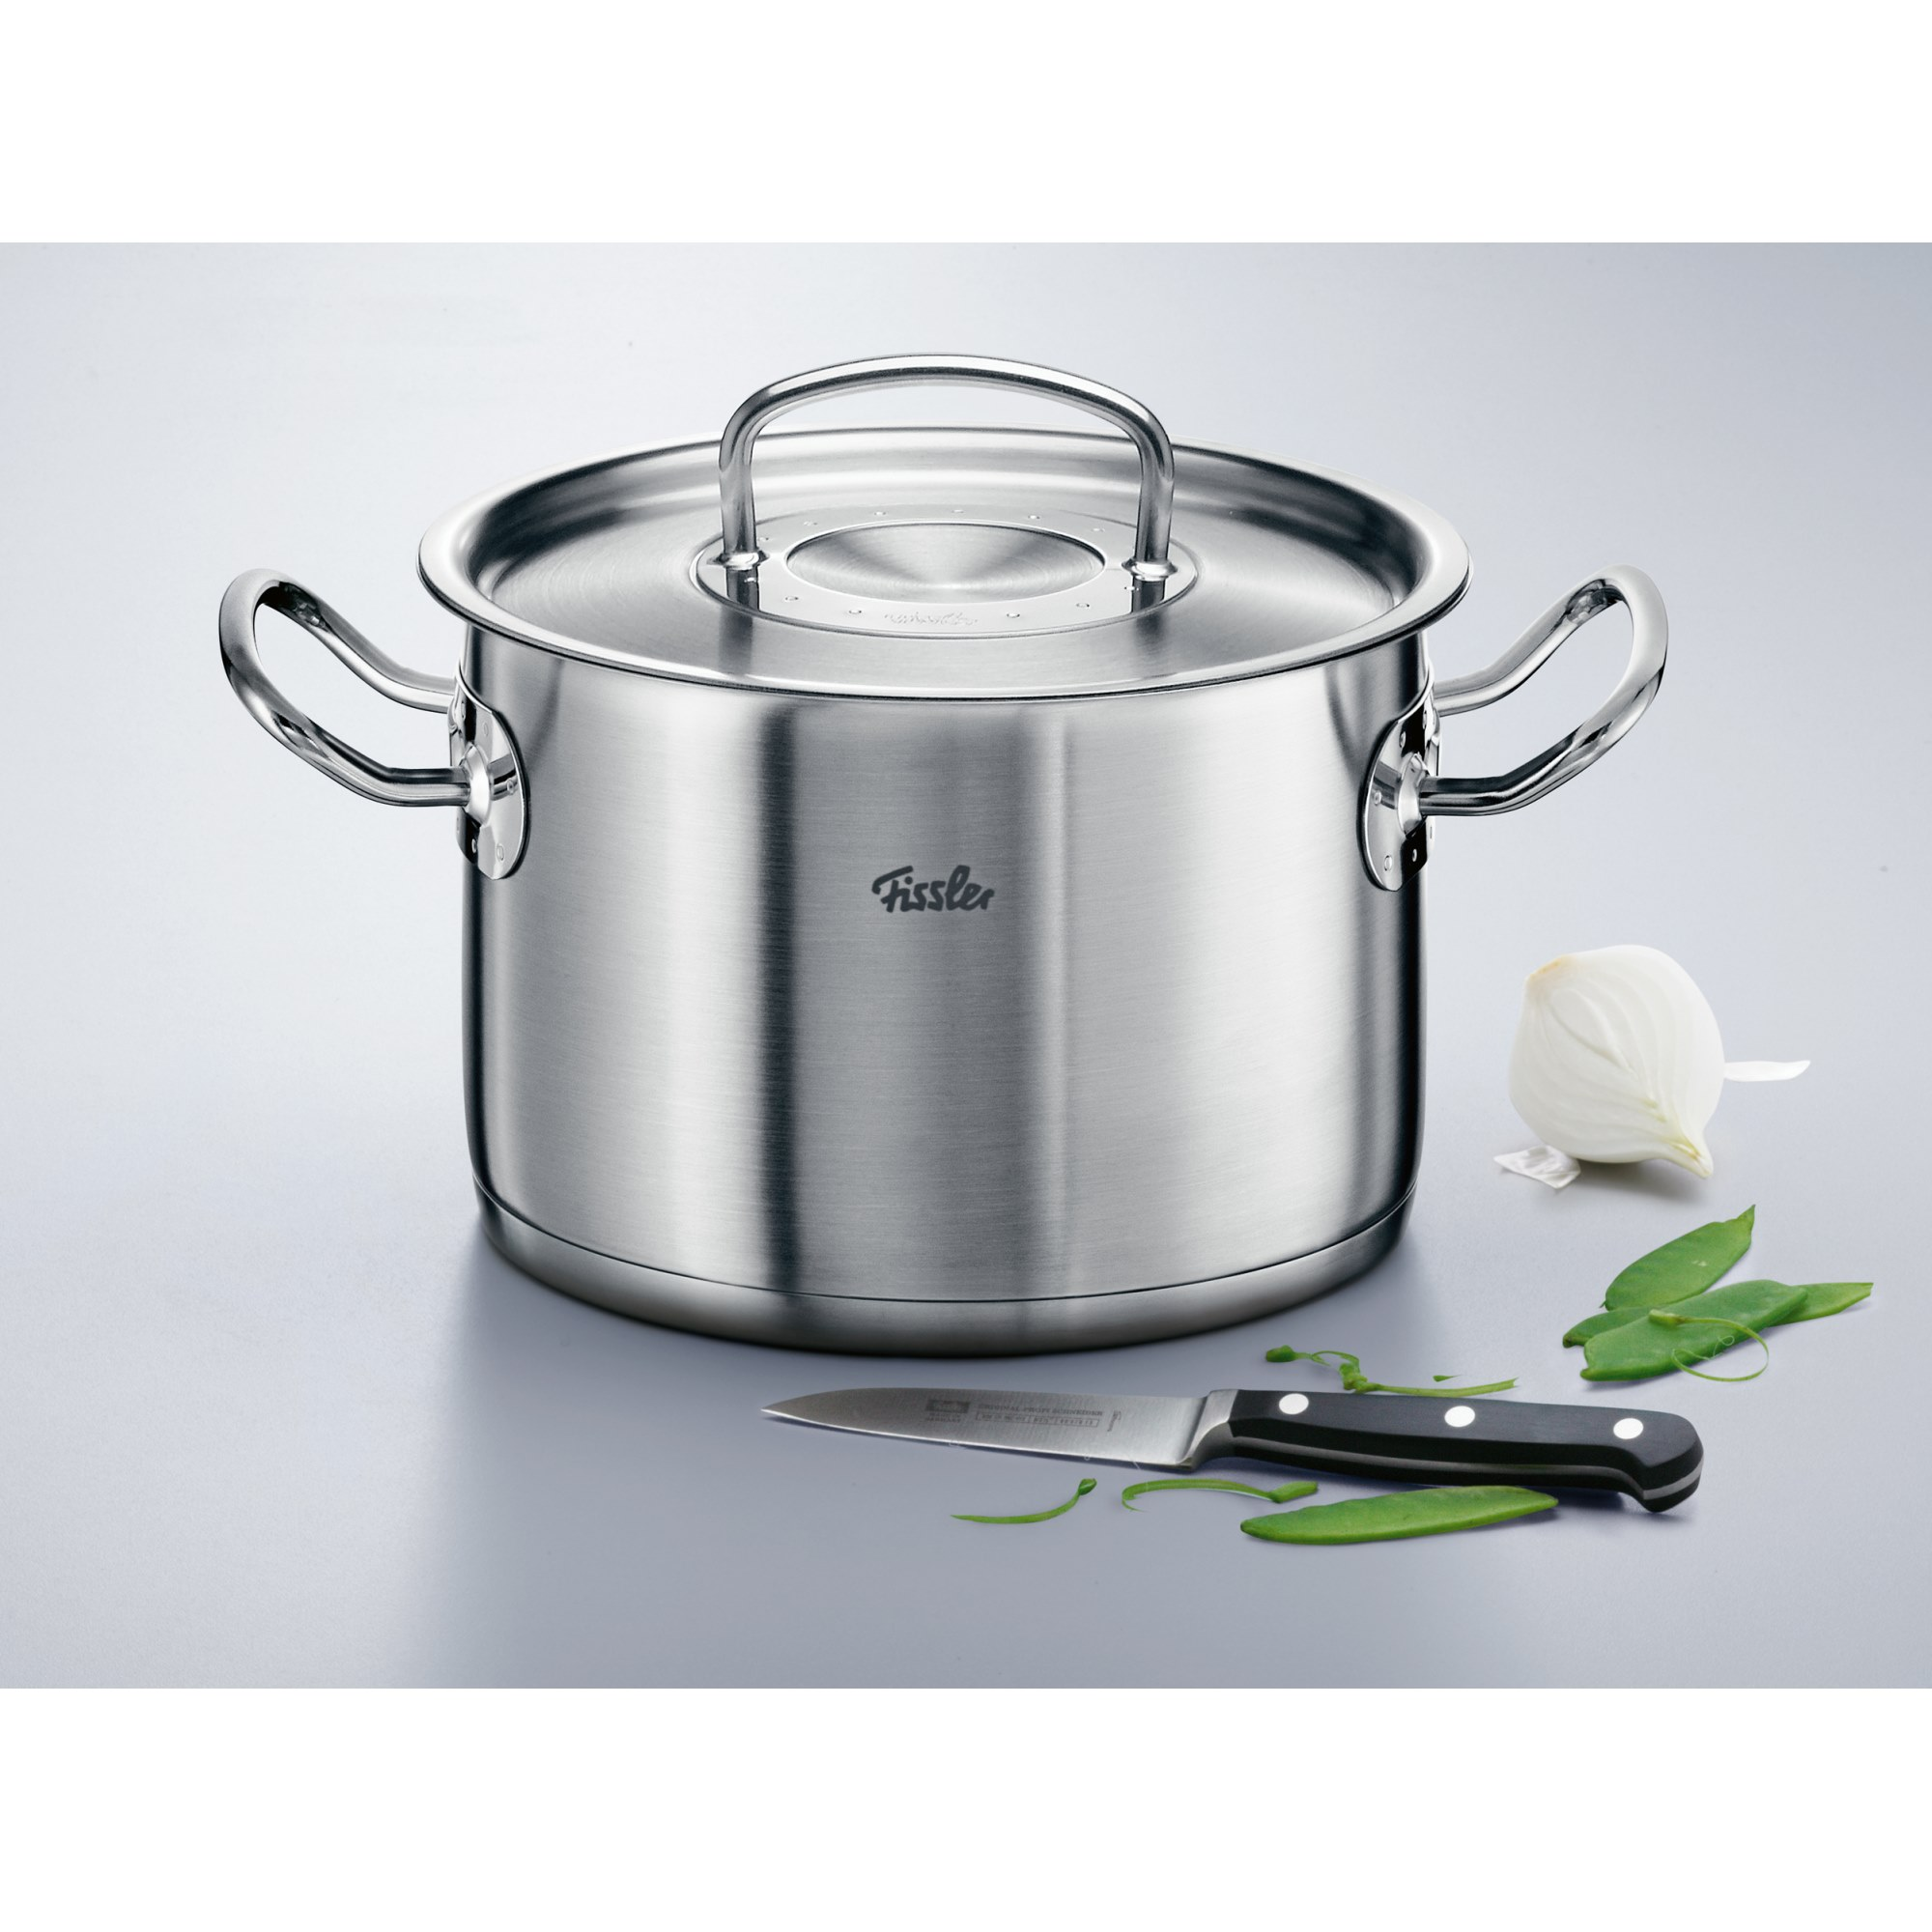 Fissler Original Profi Collection Cooking Pot 24 Cm 6 3 Litres Cooking Pots Cooking Cooking Baking 1a Neuware Englisch